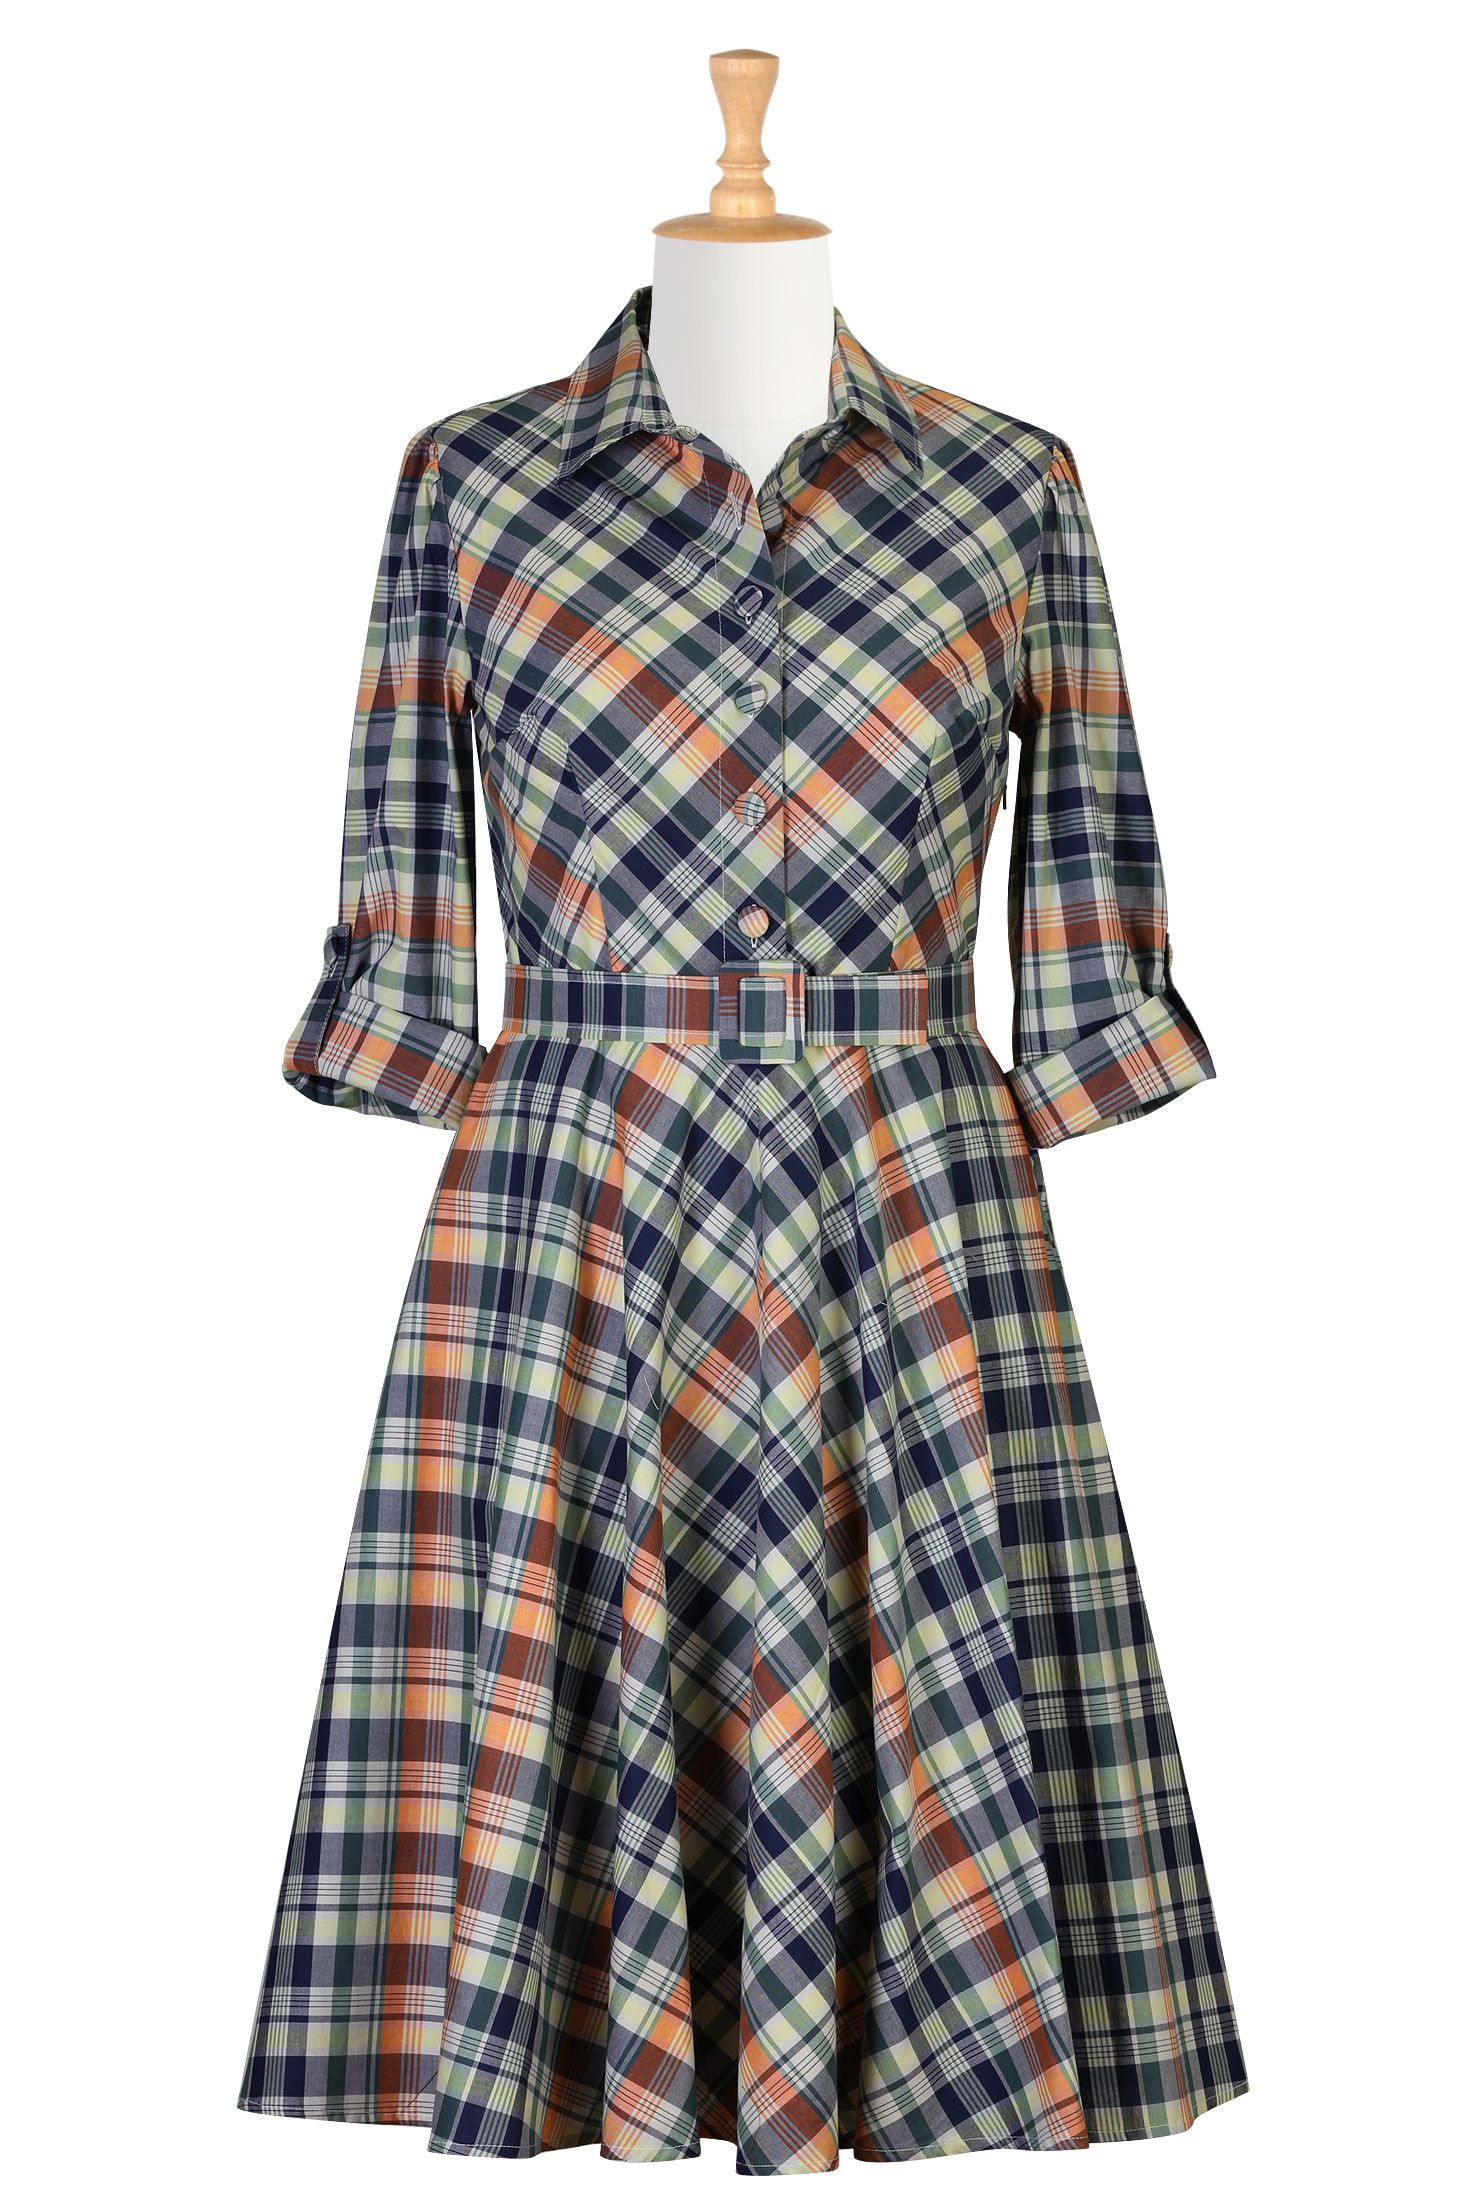 57862fdb7c7 Madras Check Cotton Shirtdresses